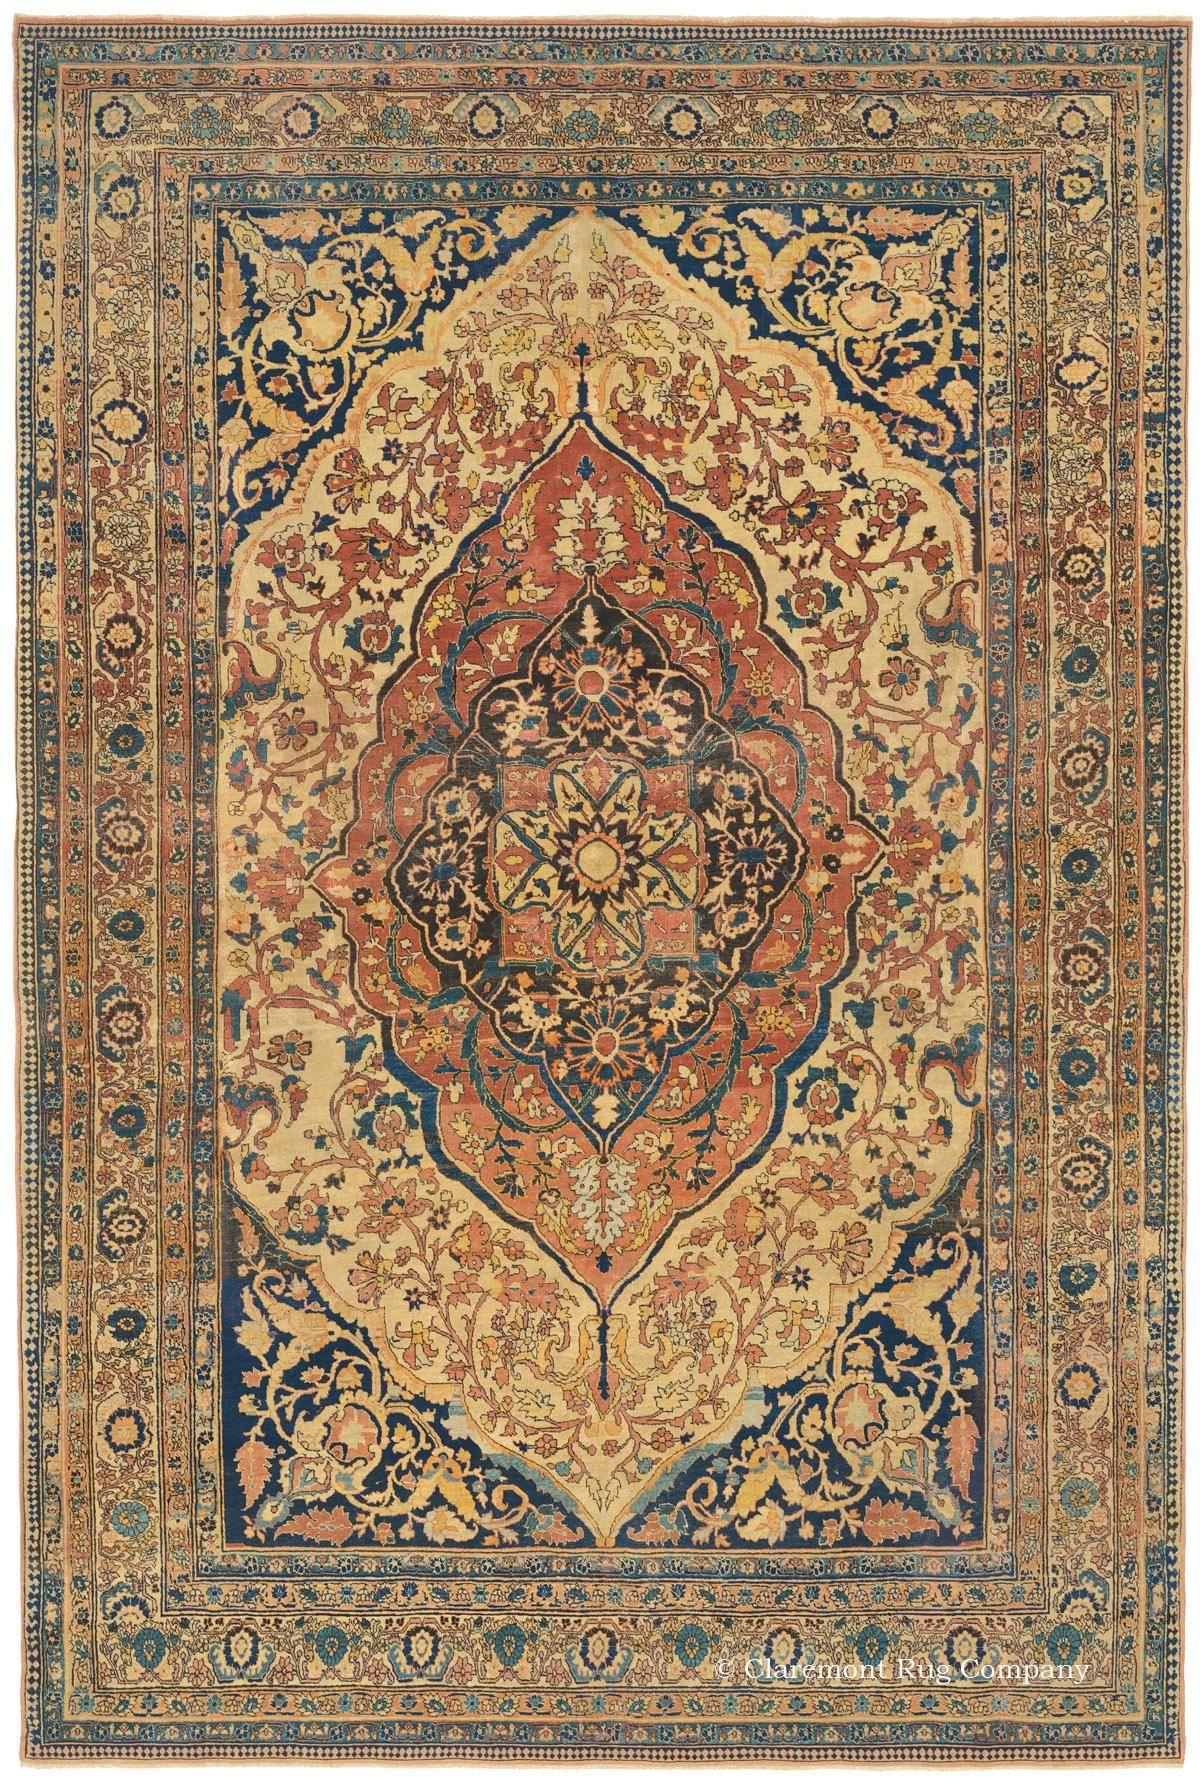 oriental carpet spring brochure of antique persian carpets from claremont rug